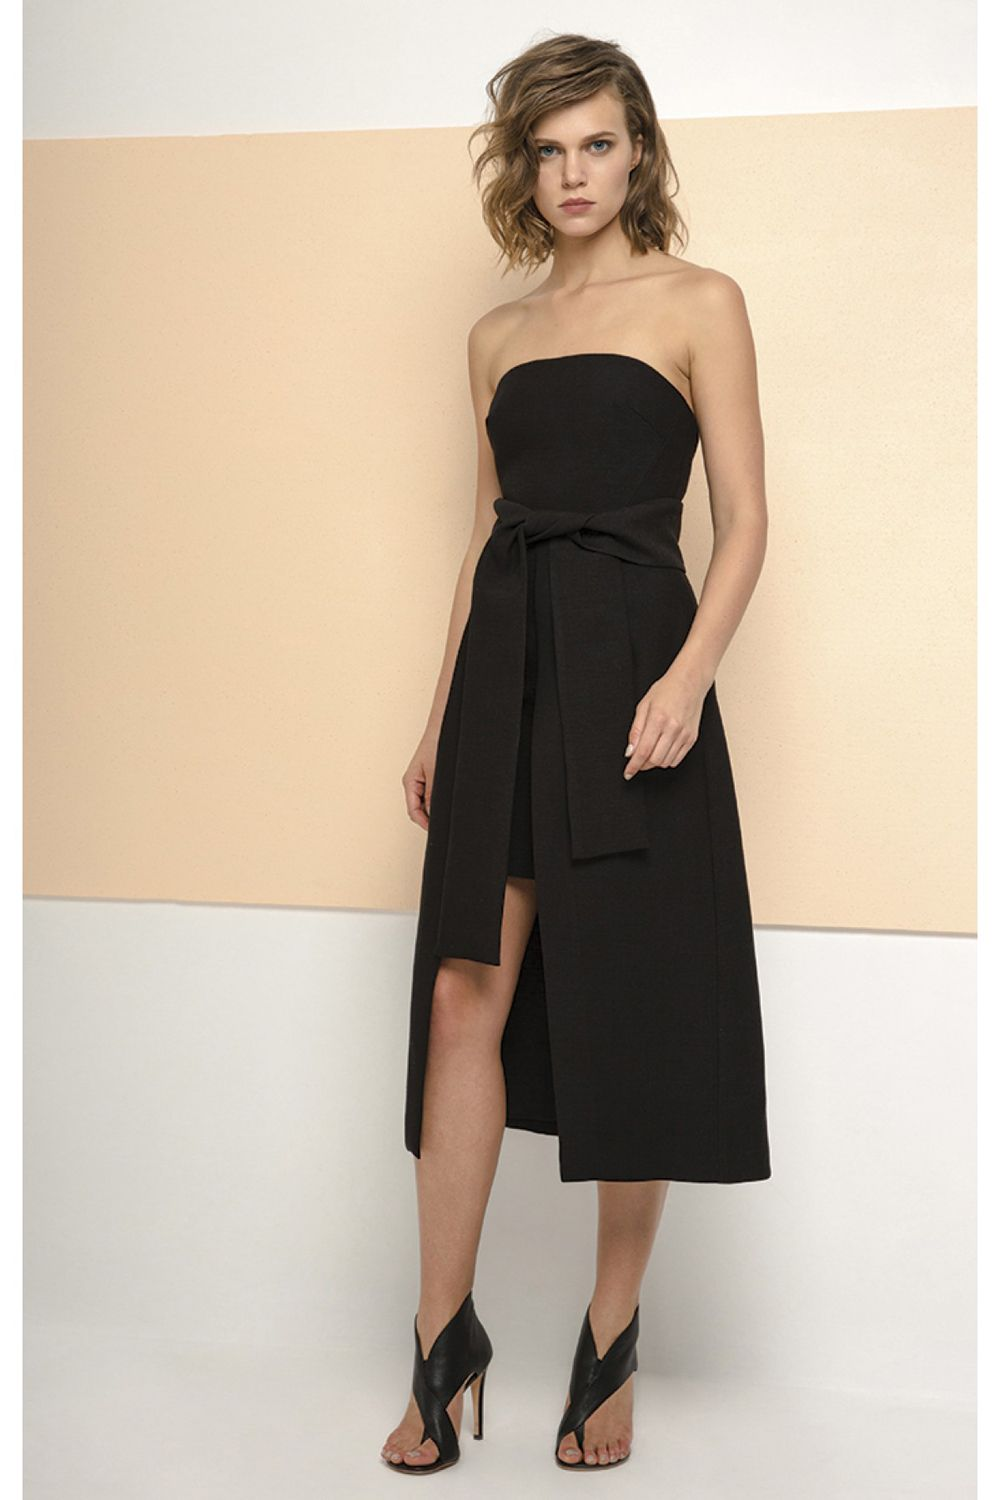 The wake me dress is a fitted strapless dress with a long open front